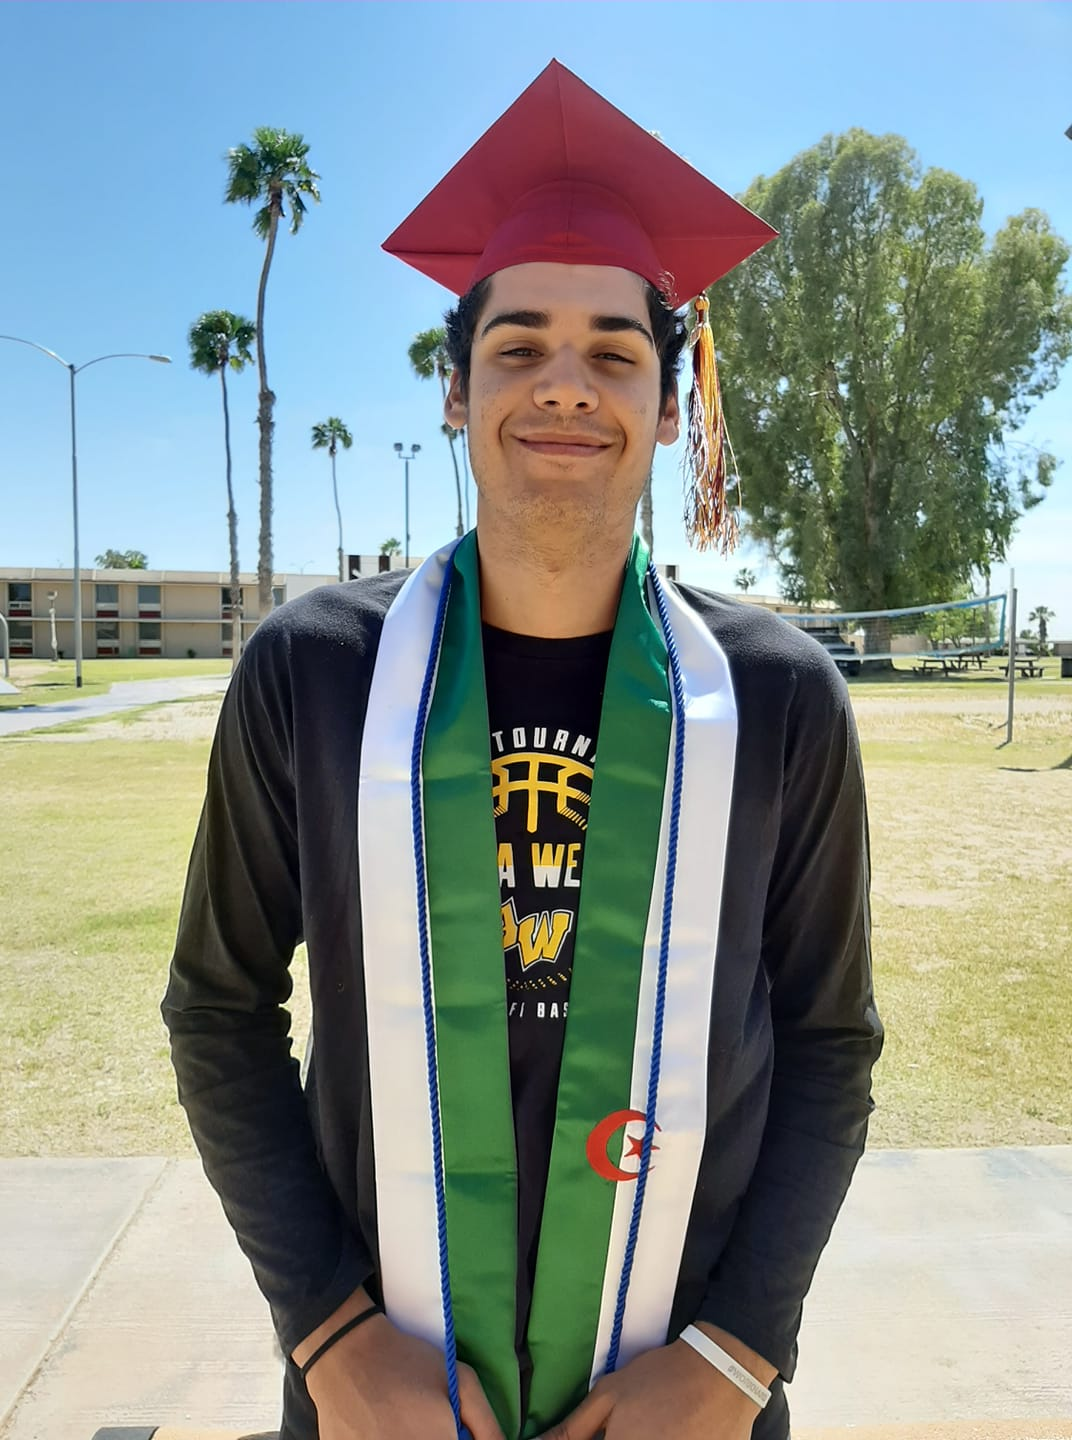 A graduate stands wearing sashes and a cap in front of the AWC dorms